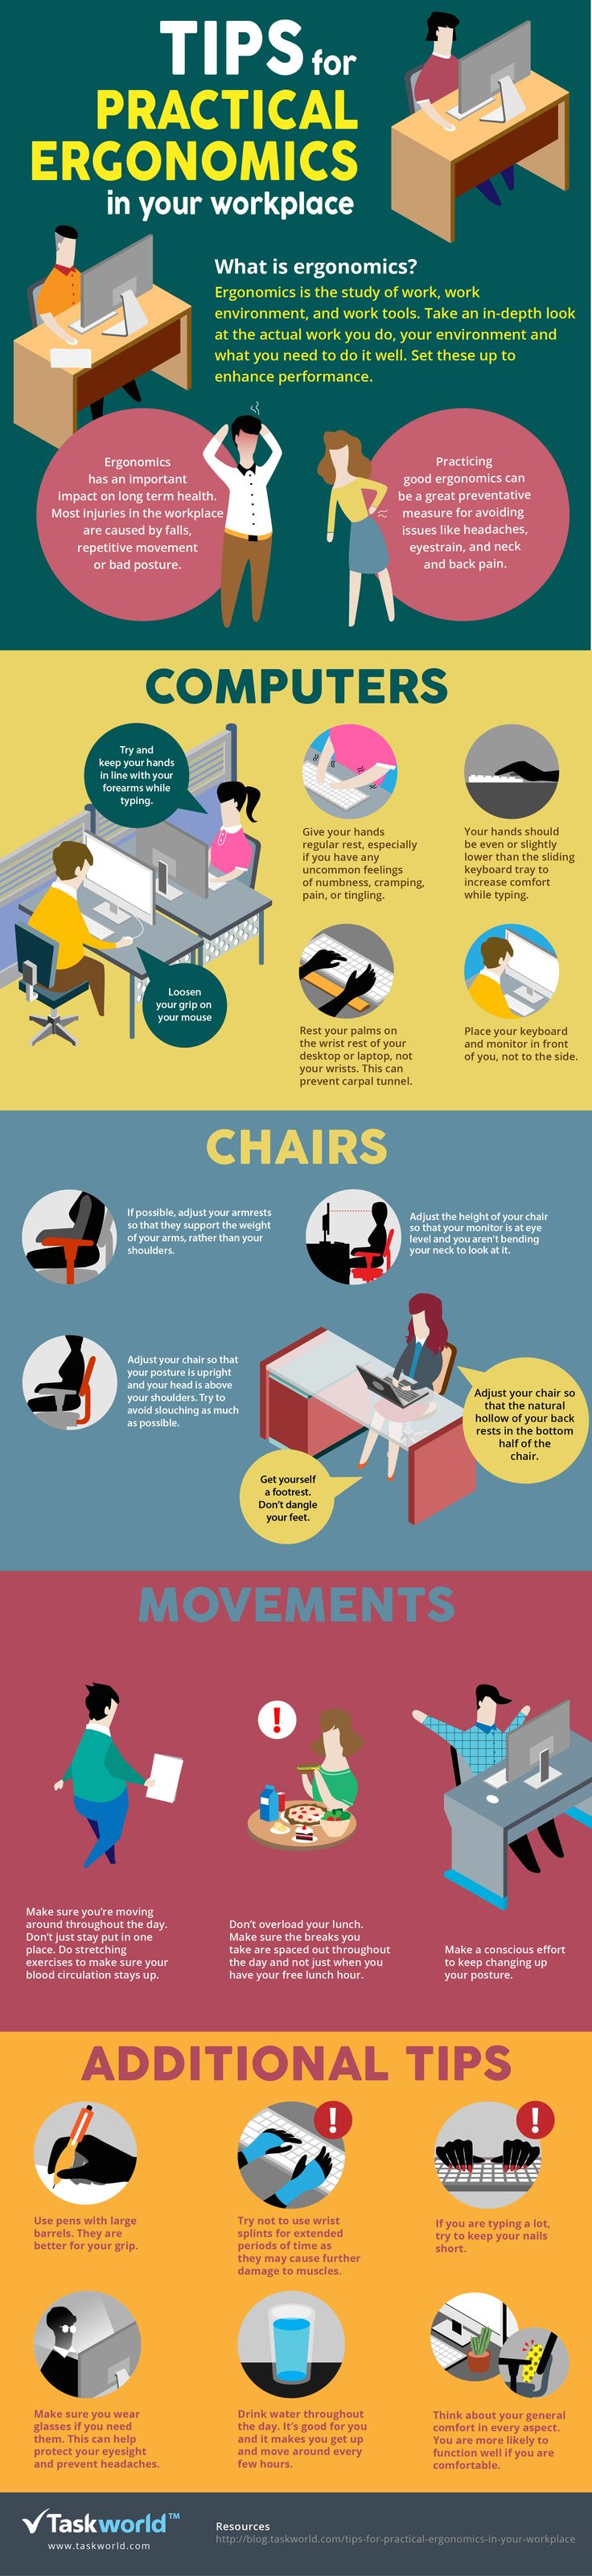 https://www.flicklearning.com/courses/health-and-safety/display-screen-equipment-training  Visualistan: Tips For Practical Ergonomics In Your Workplace #infographic